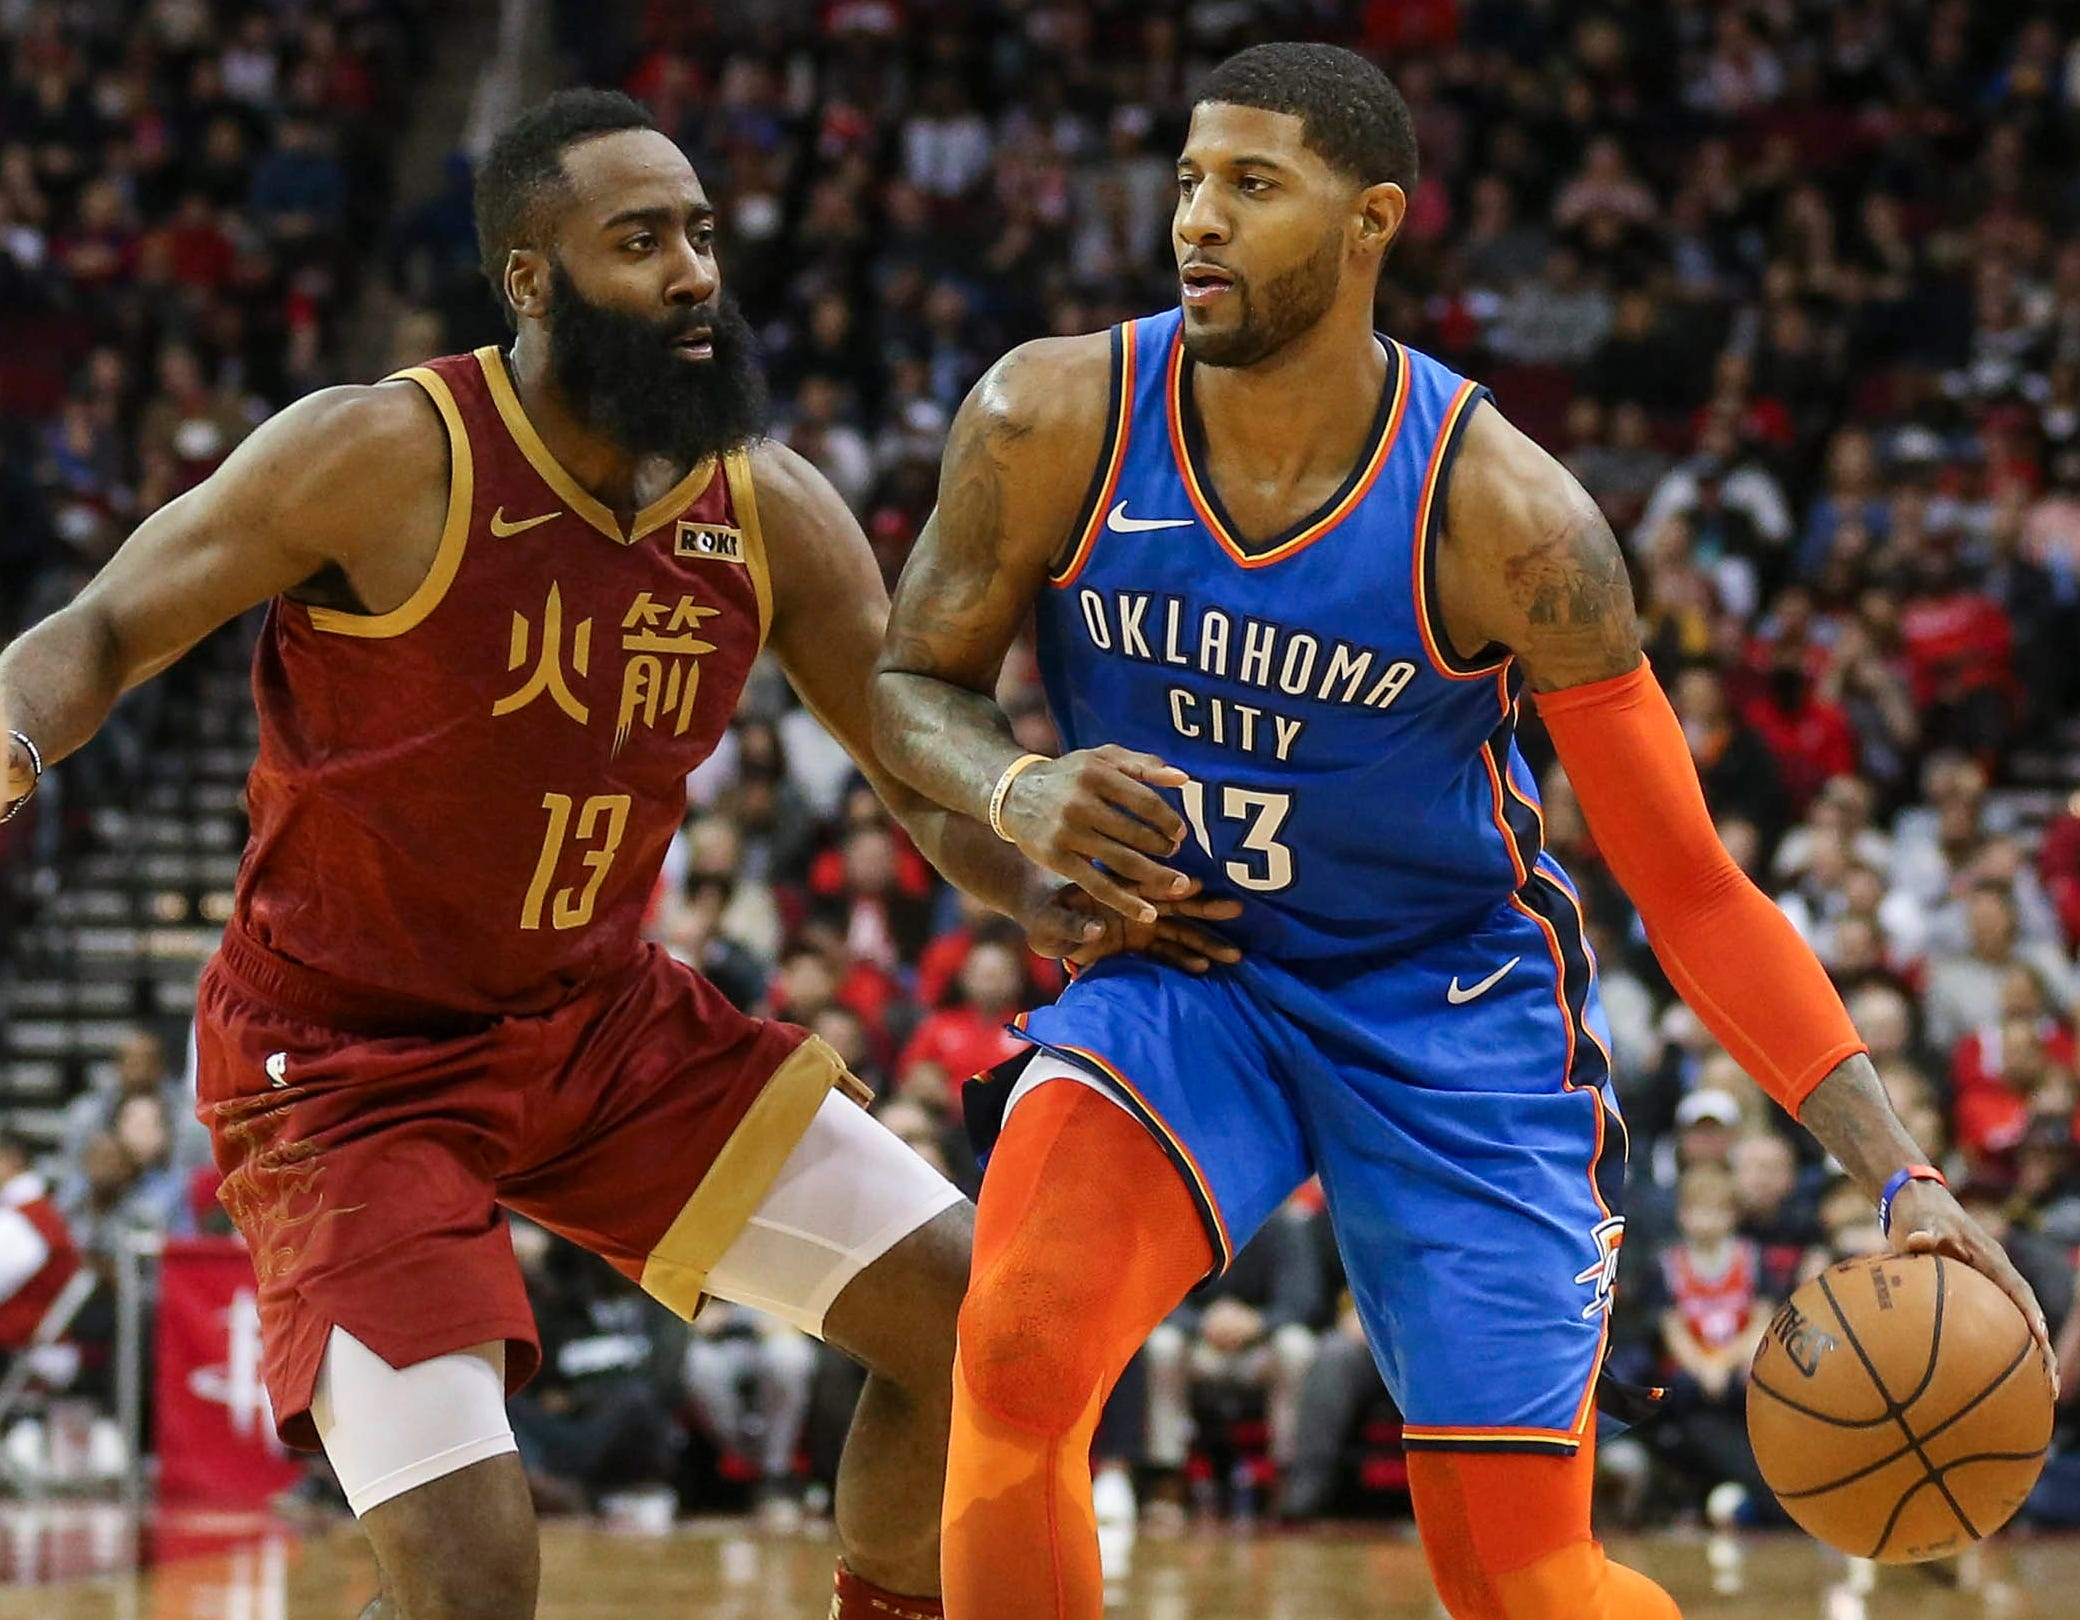 Paul George and James Harden